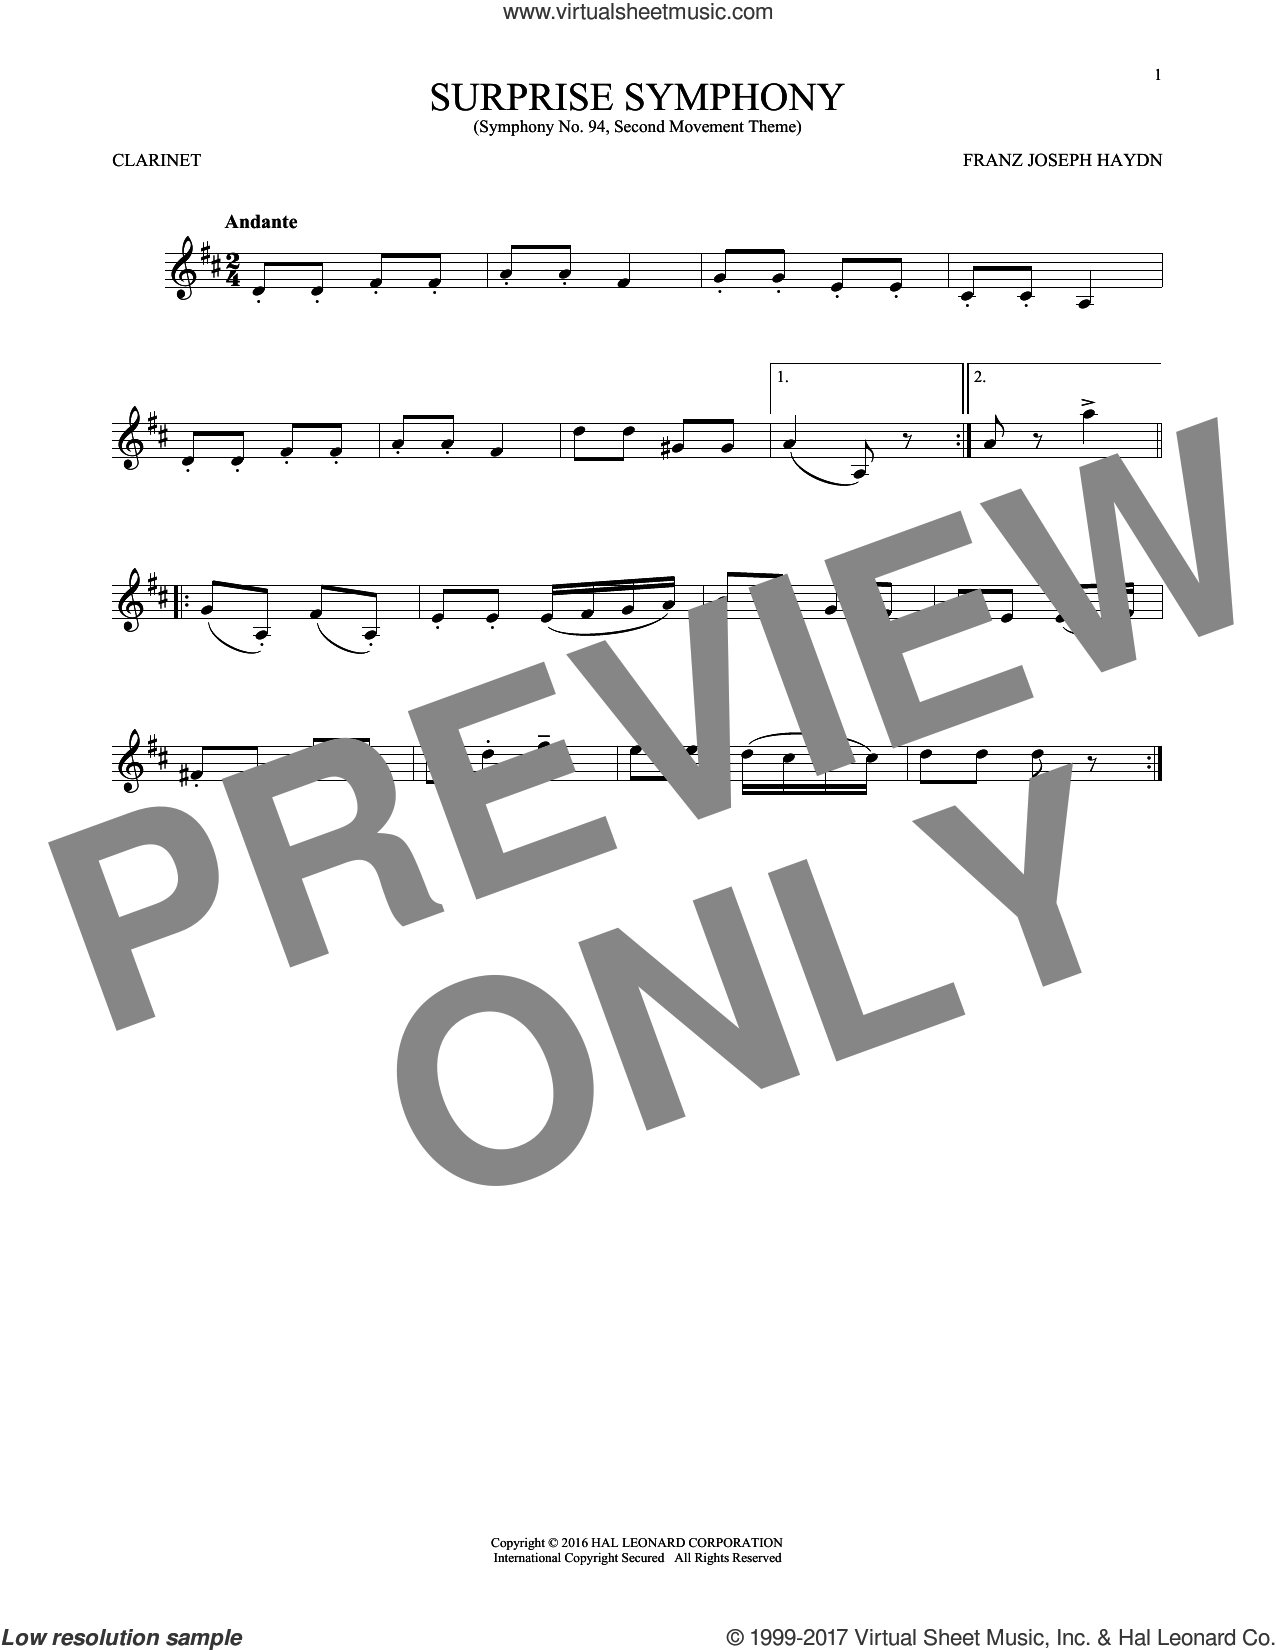 The Surprise Symphony sheet music for clarinet solo by Franz Joseph Haydn, classical score, intermediate skill level